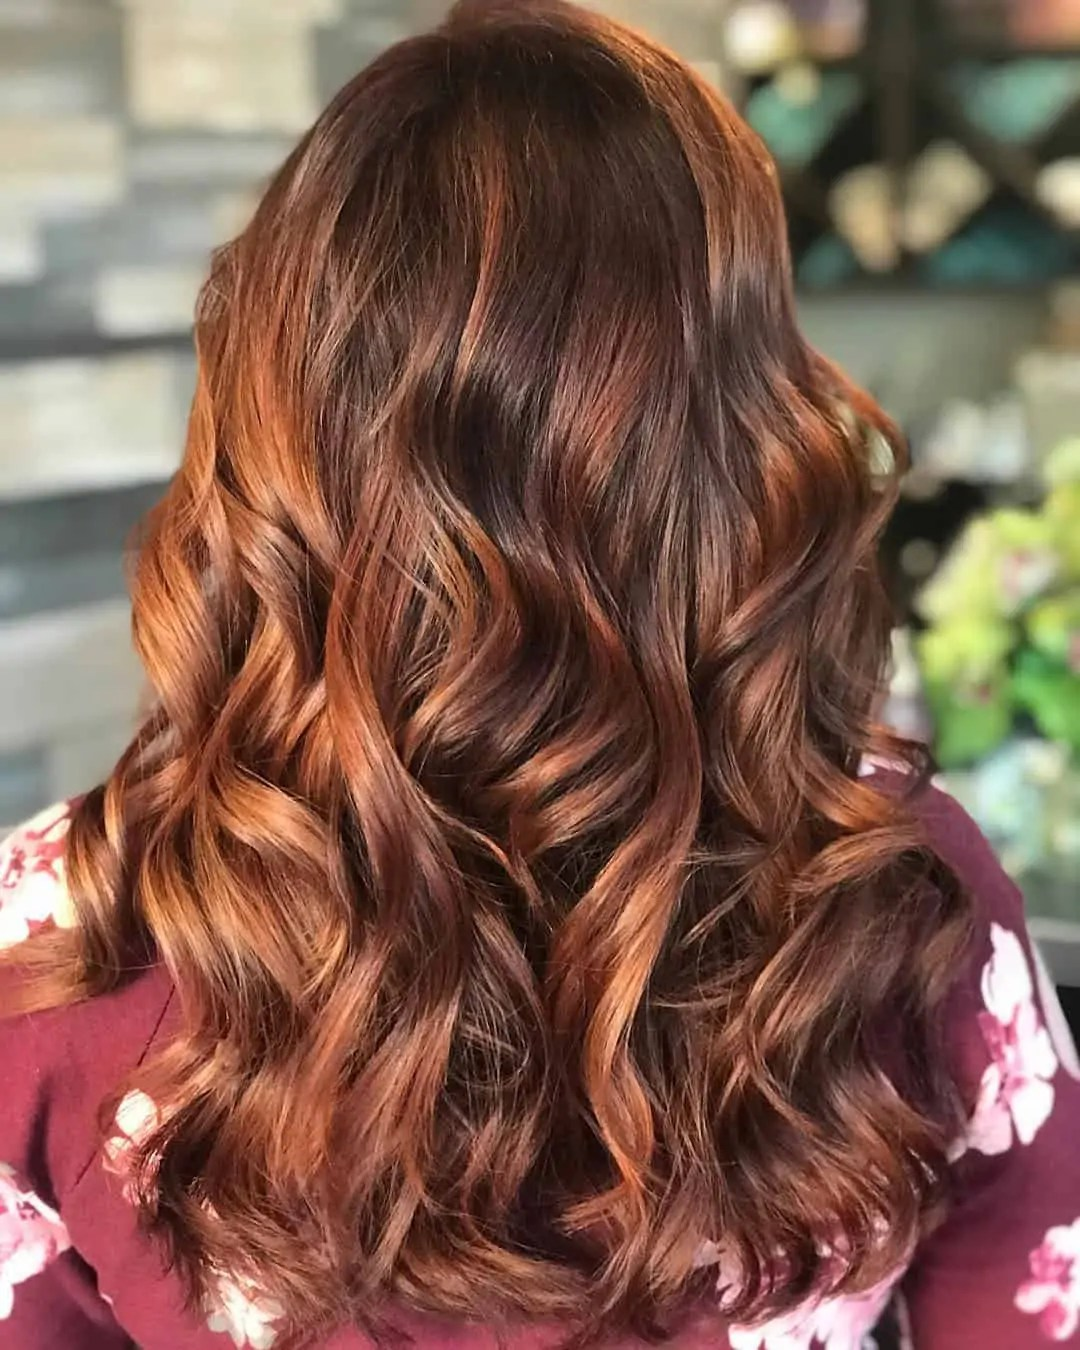 Natural Medium Brown Hair With Light Copper Highlights All About